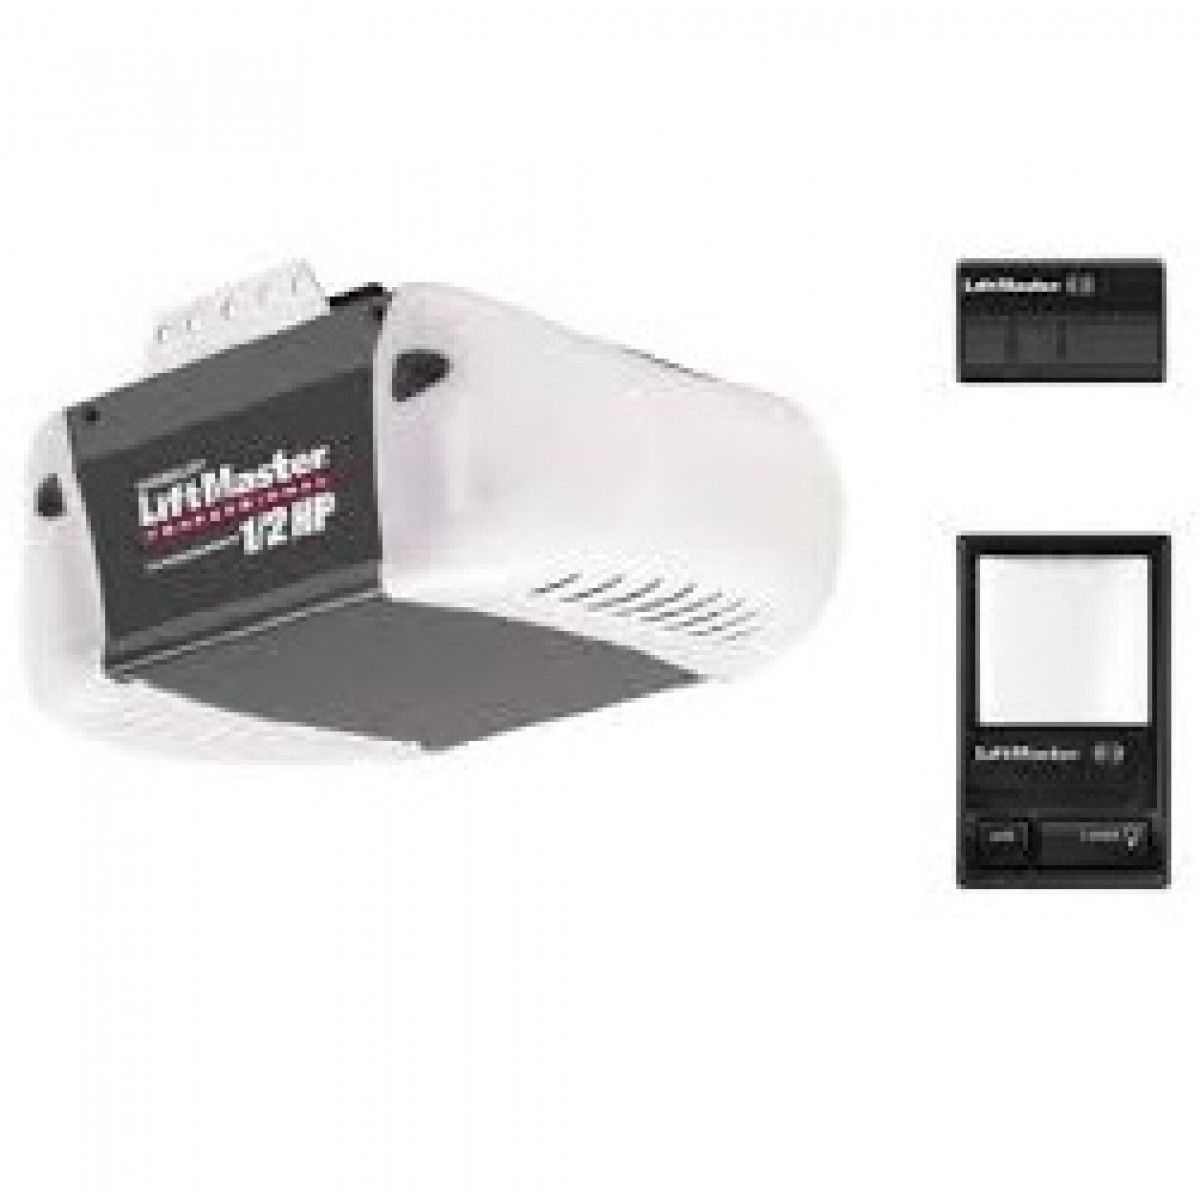 Liftmaster 3240 Premium Series 1 2 Hp Ac Screw Drive Garage Door Opener Liftmaster Garage Door Opener Liftmaster Garage Door Garage Door Opener Remote